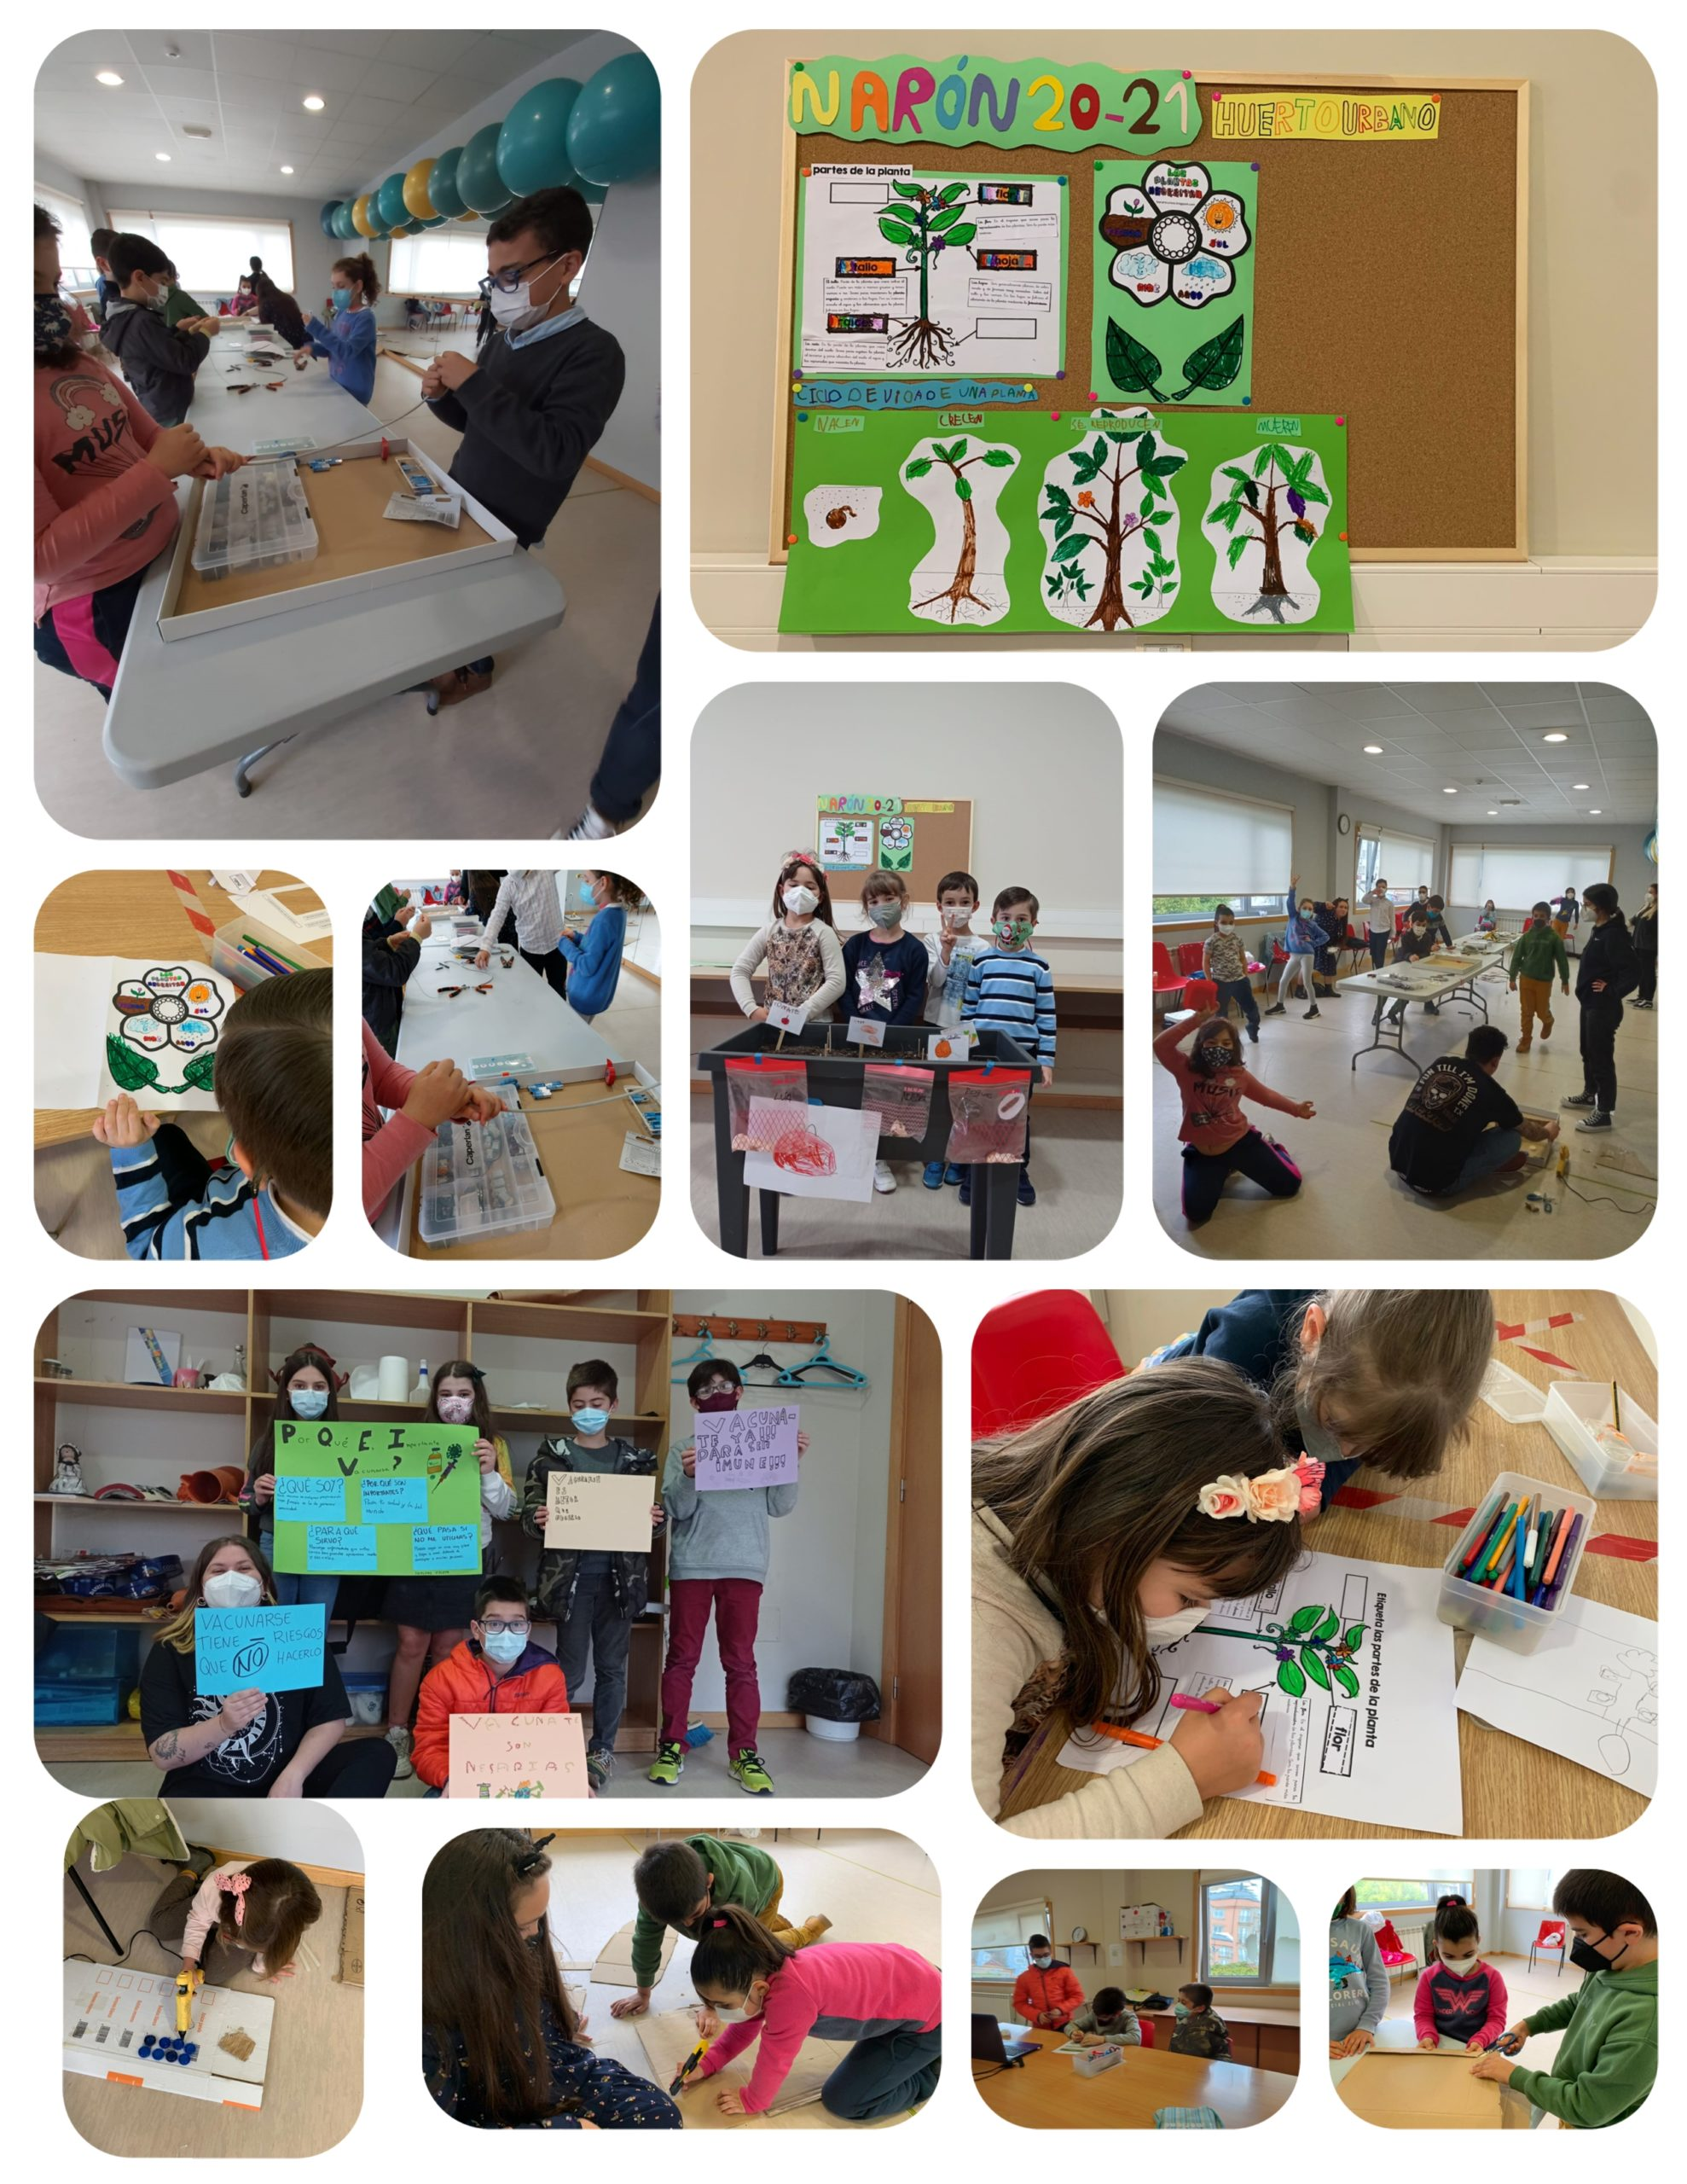 Talleres collage15-05-21